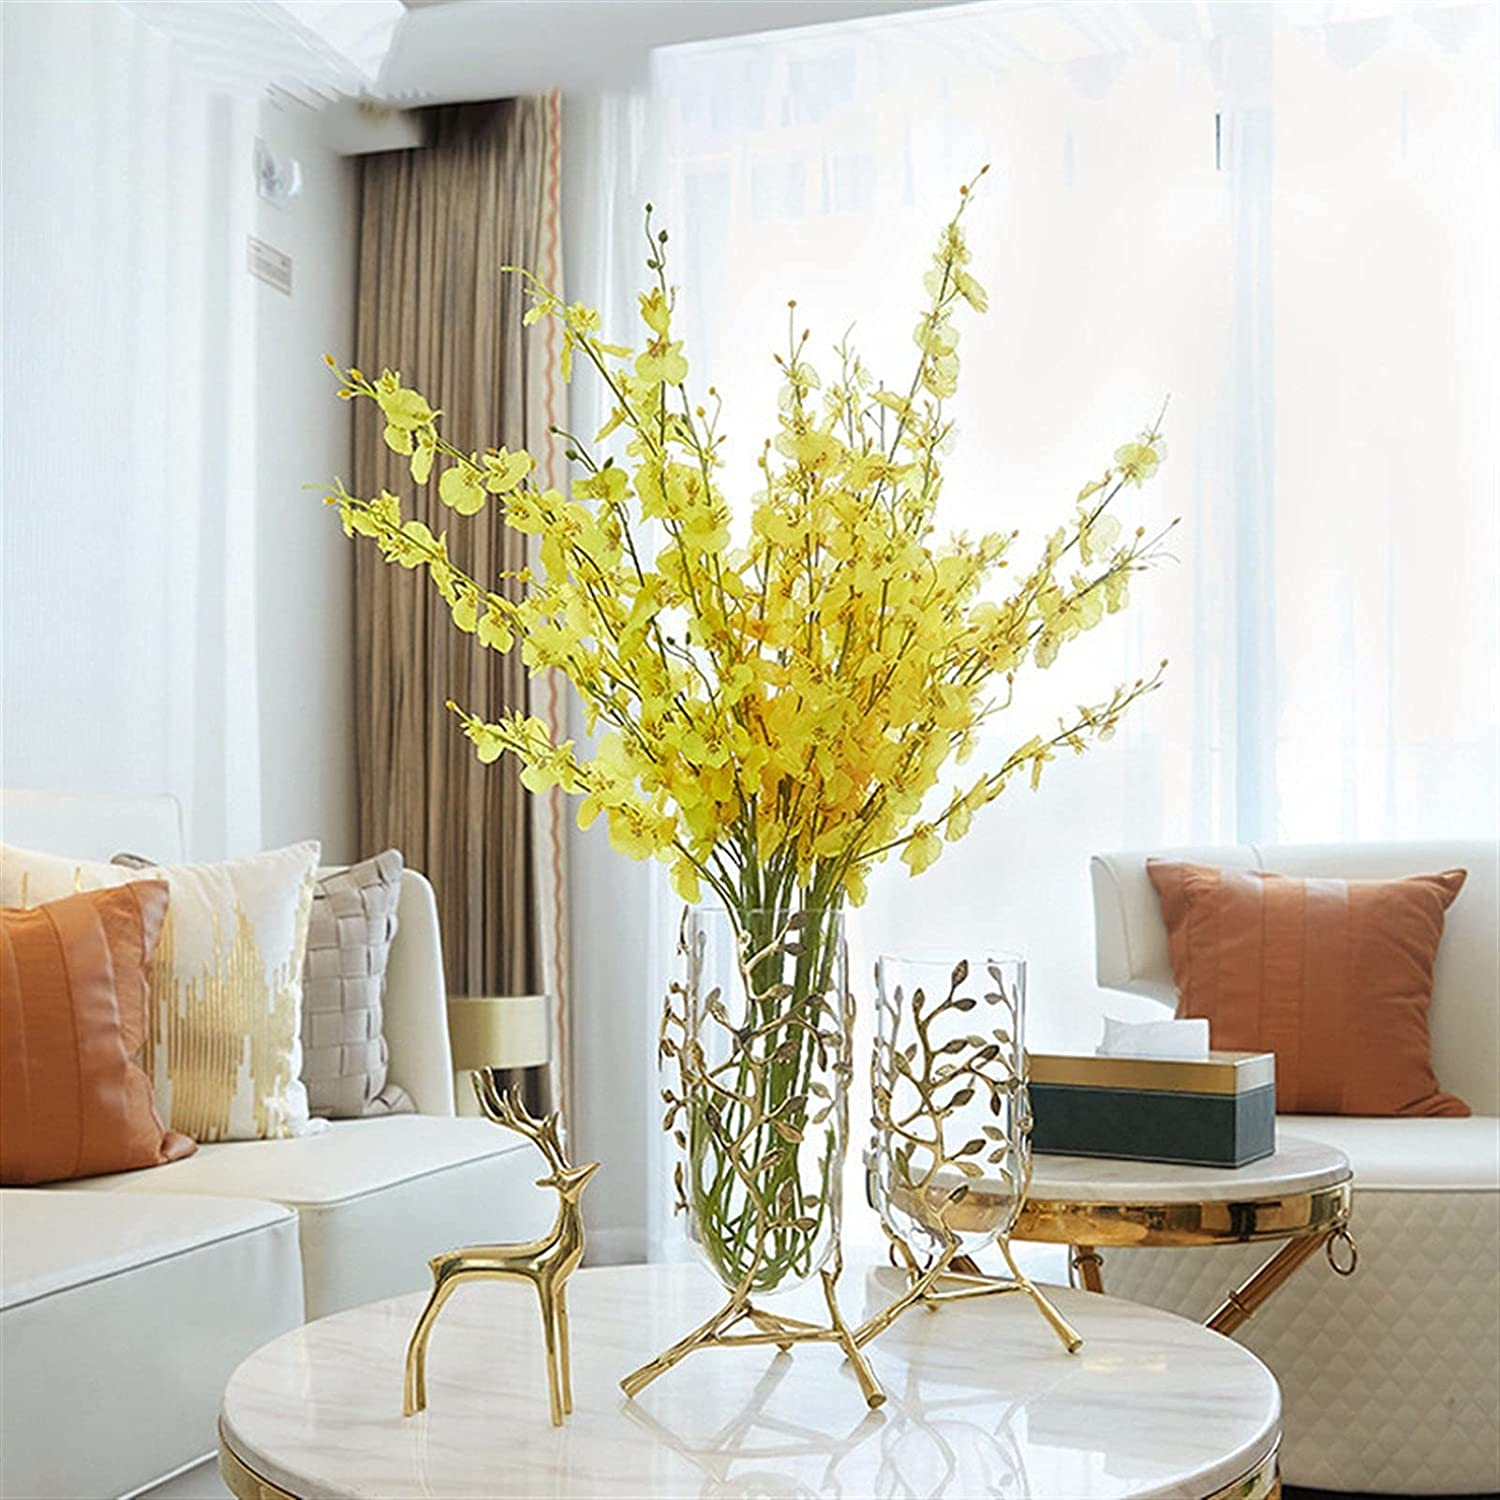 Simulation Of Dried depot Flowers And With Max 45% OFF Gla Decorations Brass Vase